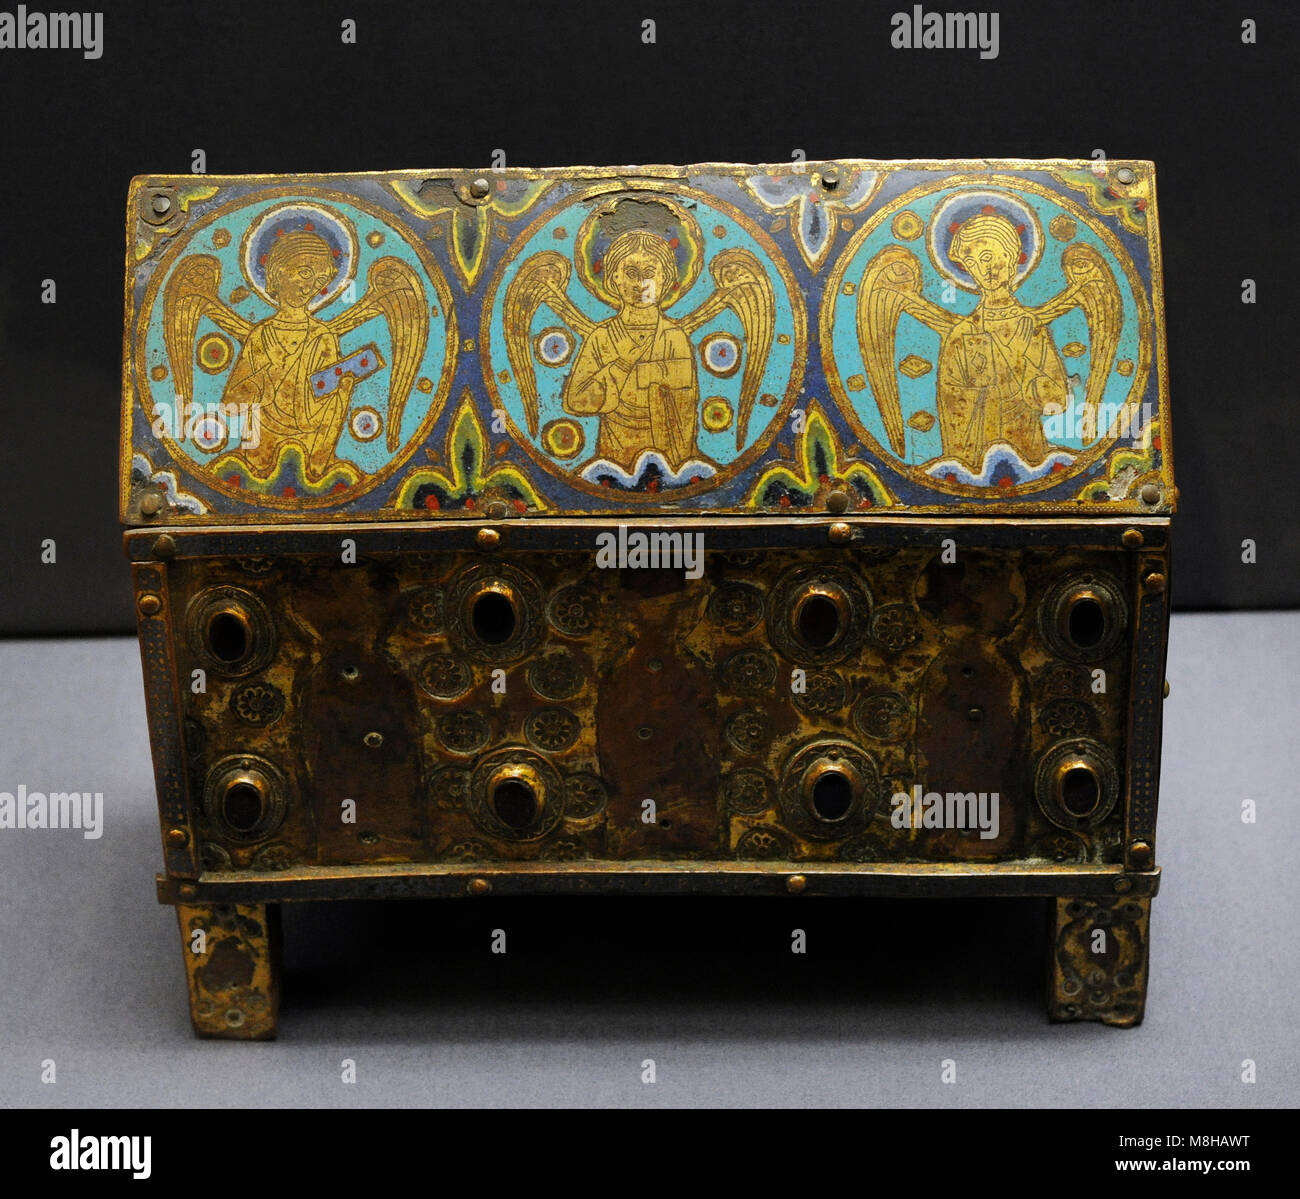 Small chasse with angels in medallions. Limoges, c. 1200-1210. Copper with enamel on oak. Museum Schnütgen. - Stock Image